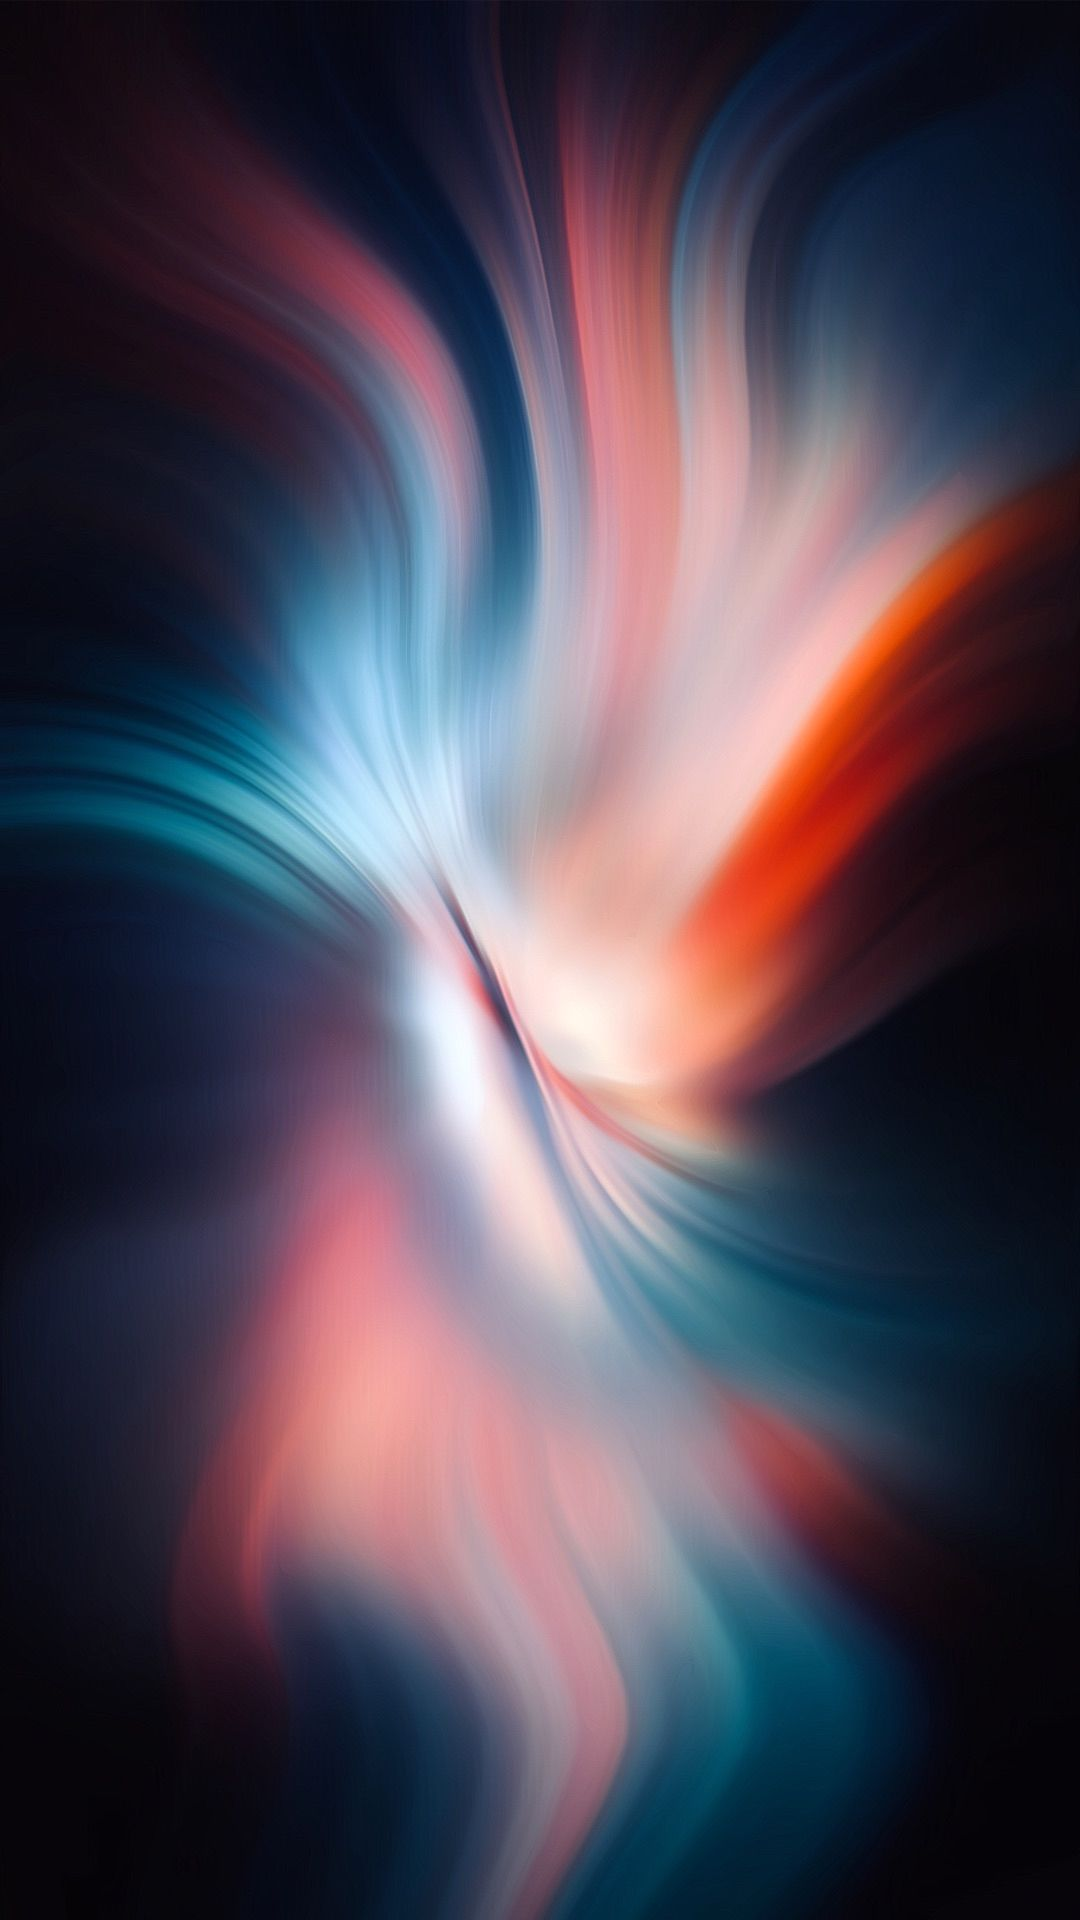 Iphone Wallpaper Cute High Resolution With Images Photography Wallpaper Abstract Wallpaper Abstract Iphone Wallpaper